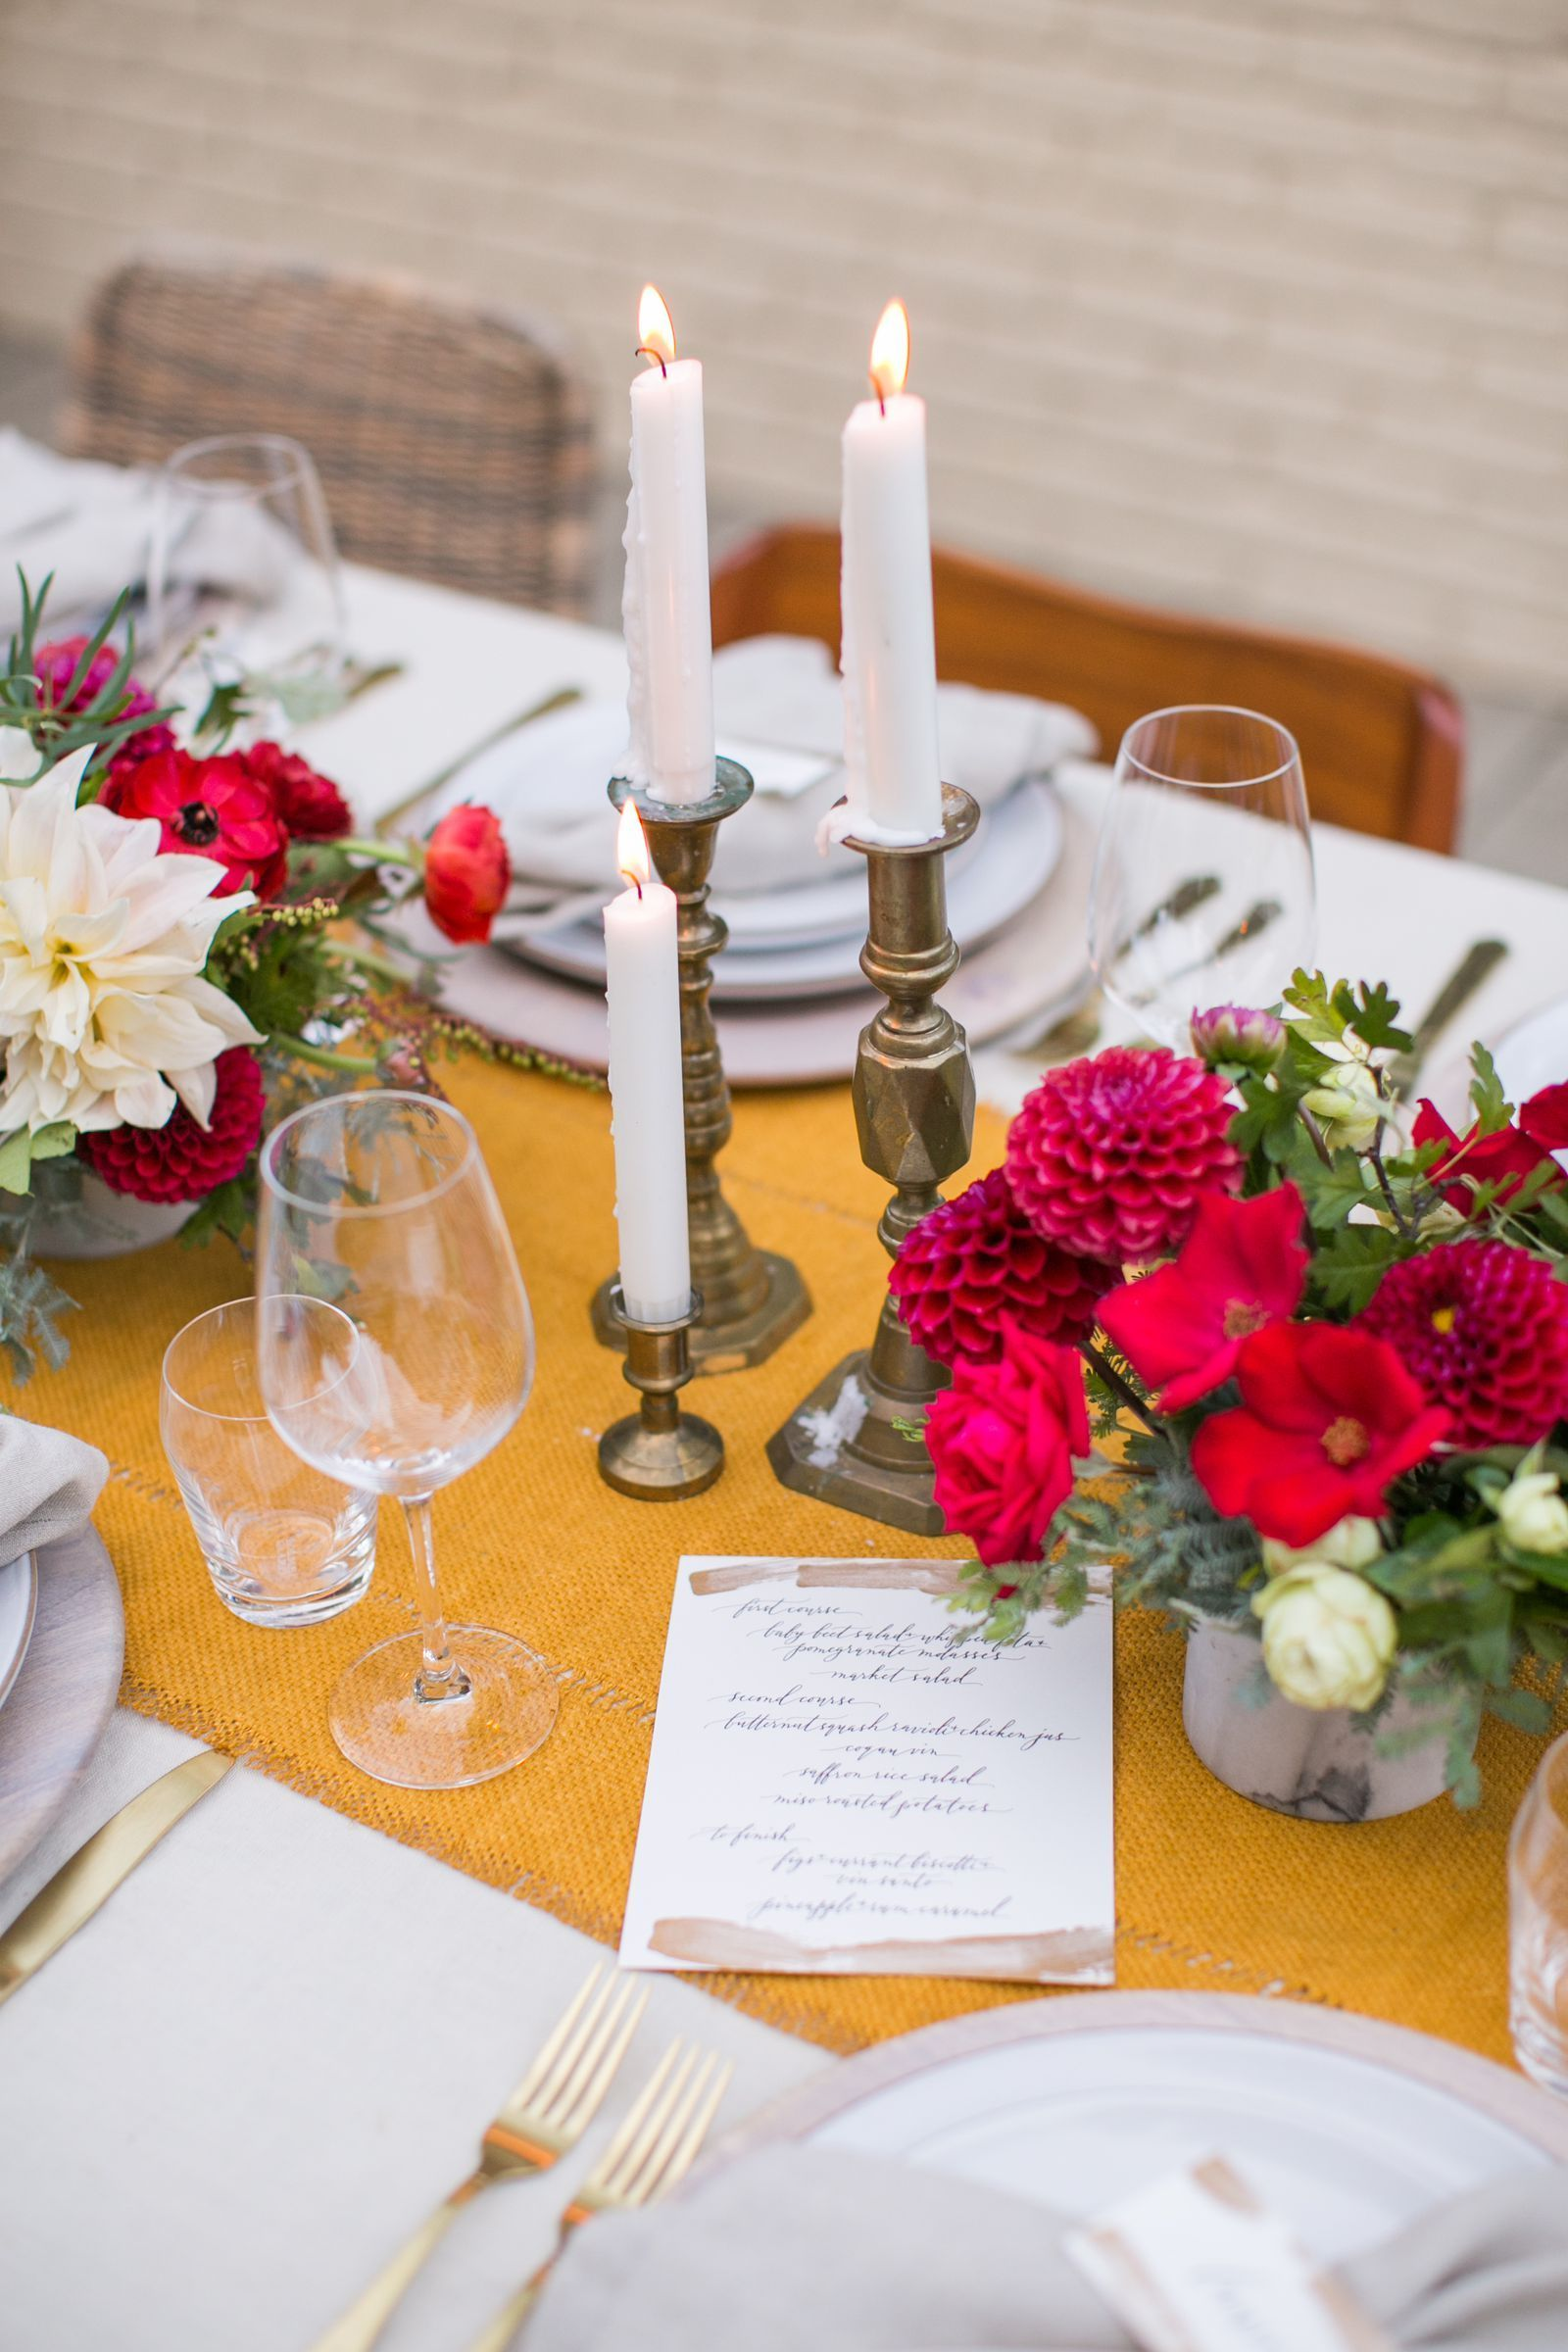 Table Setting Ideas For Romantic Dinner With Your Partner Hello